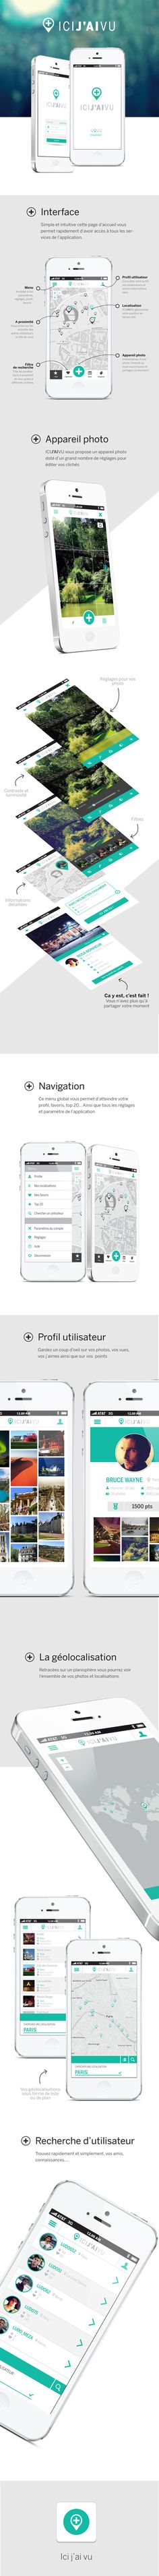 Application ICI J'AI VU by Nathalie Troucelier, via Behance // design mobile… Iphone App Design, App Ui Design, User Interface Design, Game Design, Interaktives Design, Flat Design, Graphic Design, Application Design, Interaction Design